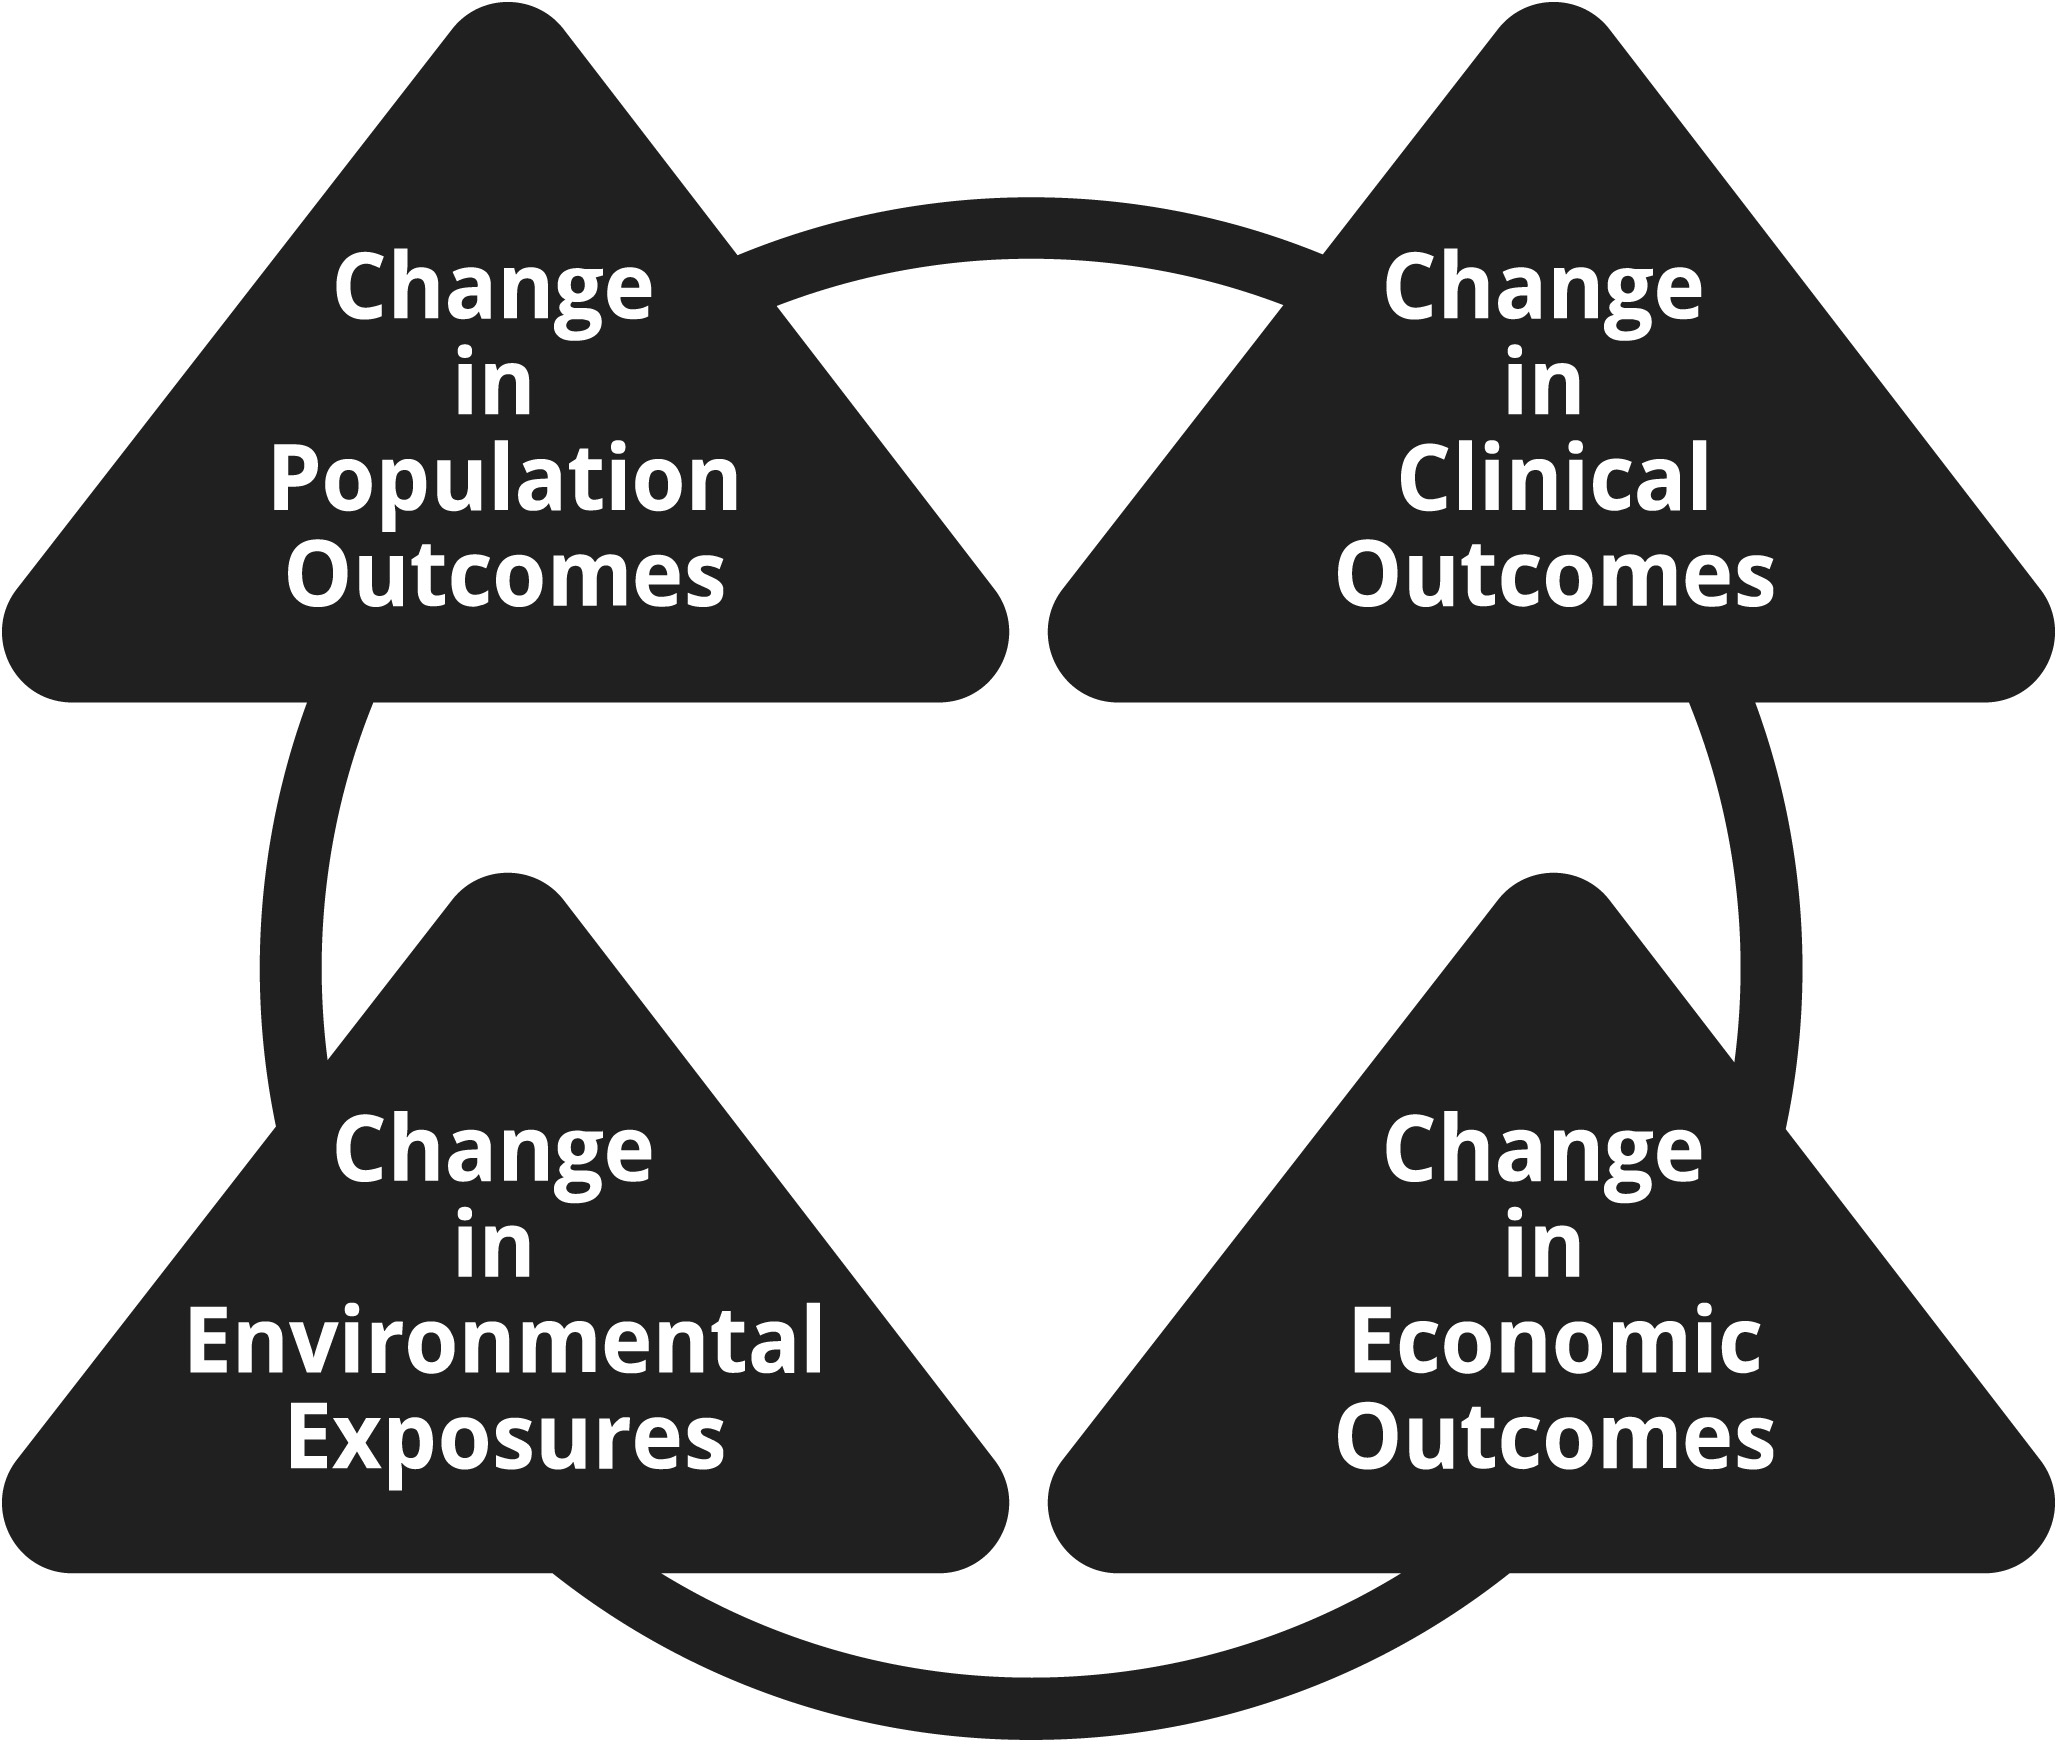 The impacts category is represented as a black ring that includes four areas of impact that environmental health researchers tend to assess. These activities are represented as nodes along the ring and include Changes in Population Outcomes, Changes in Clinical Outcomes, Changes in Economic Outcomes, and Changes in Environmental Exposures.